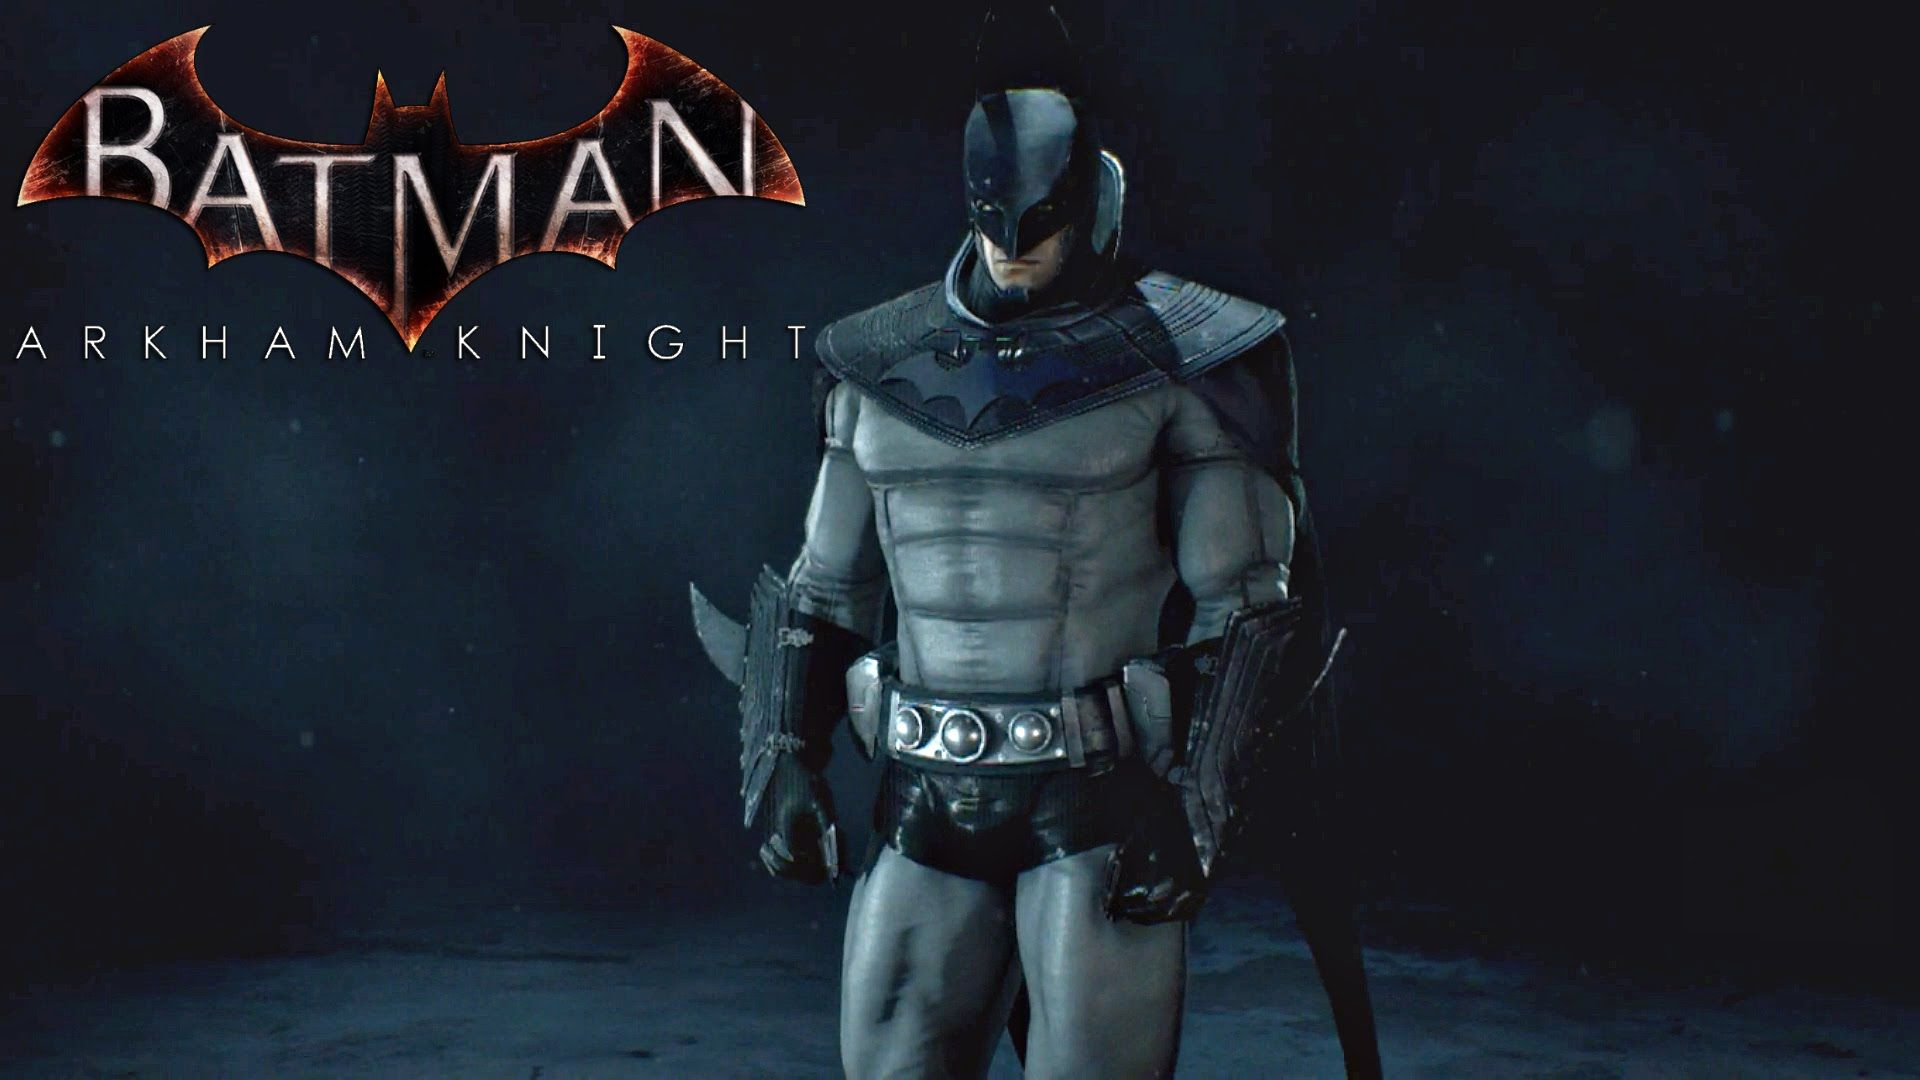 Batman Arkham Knight Anime Batman Skin Gameplay Batman Batman